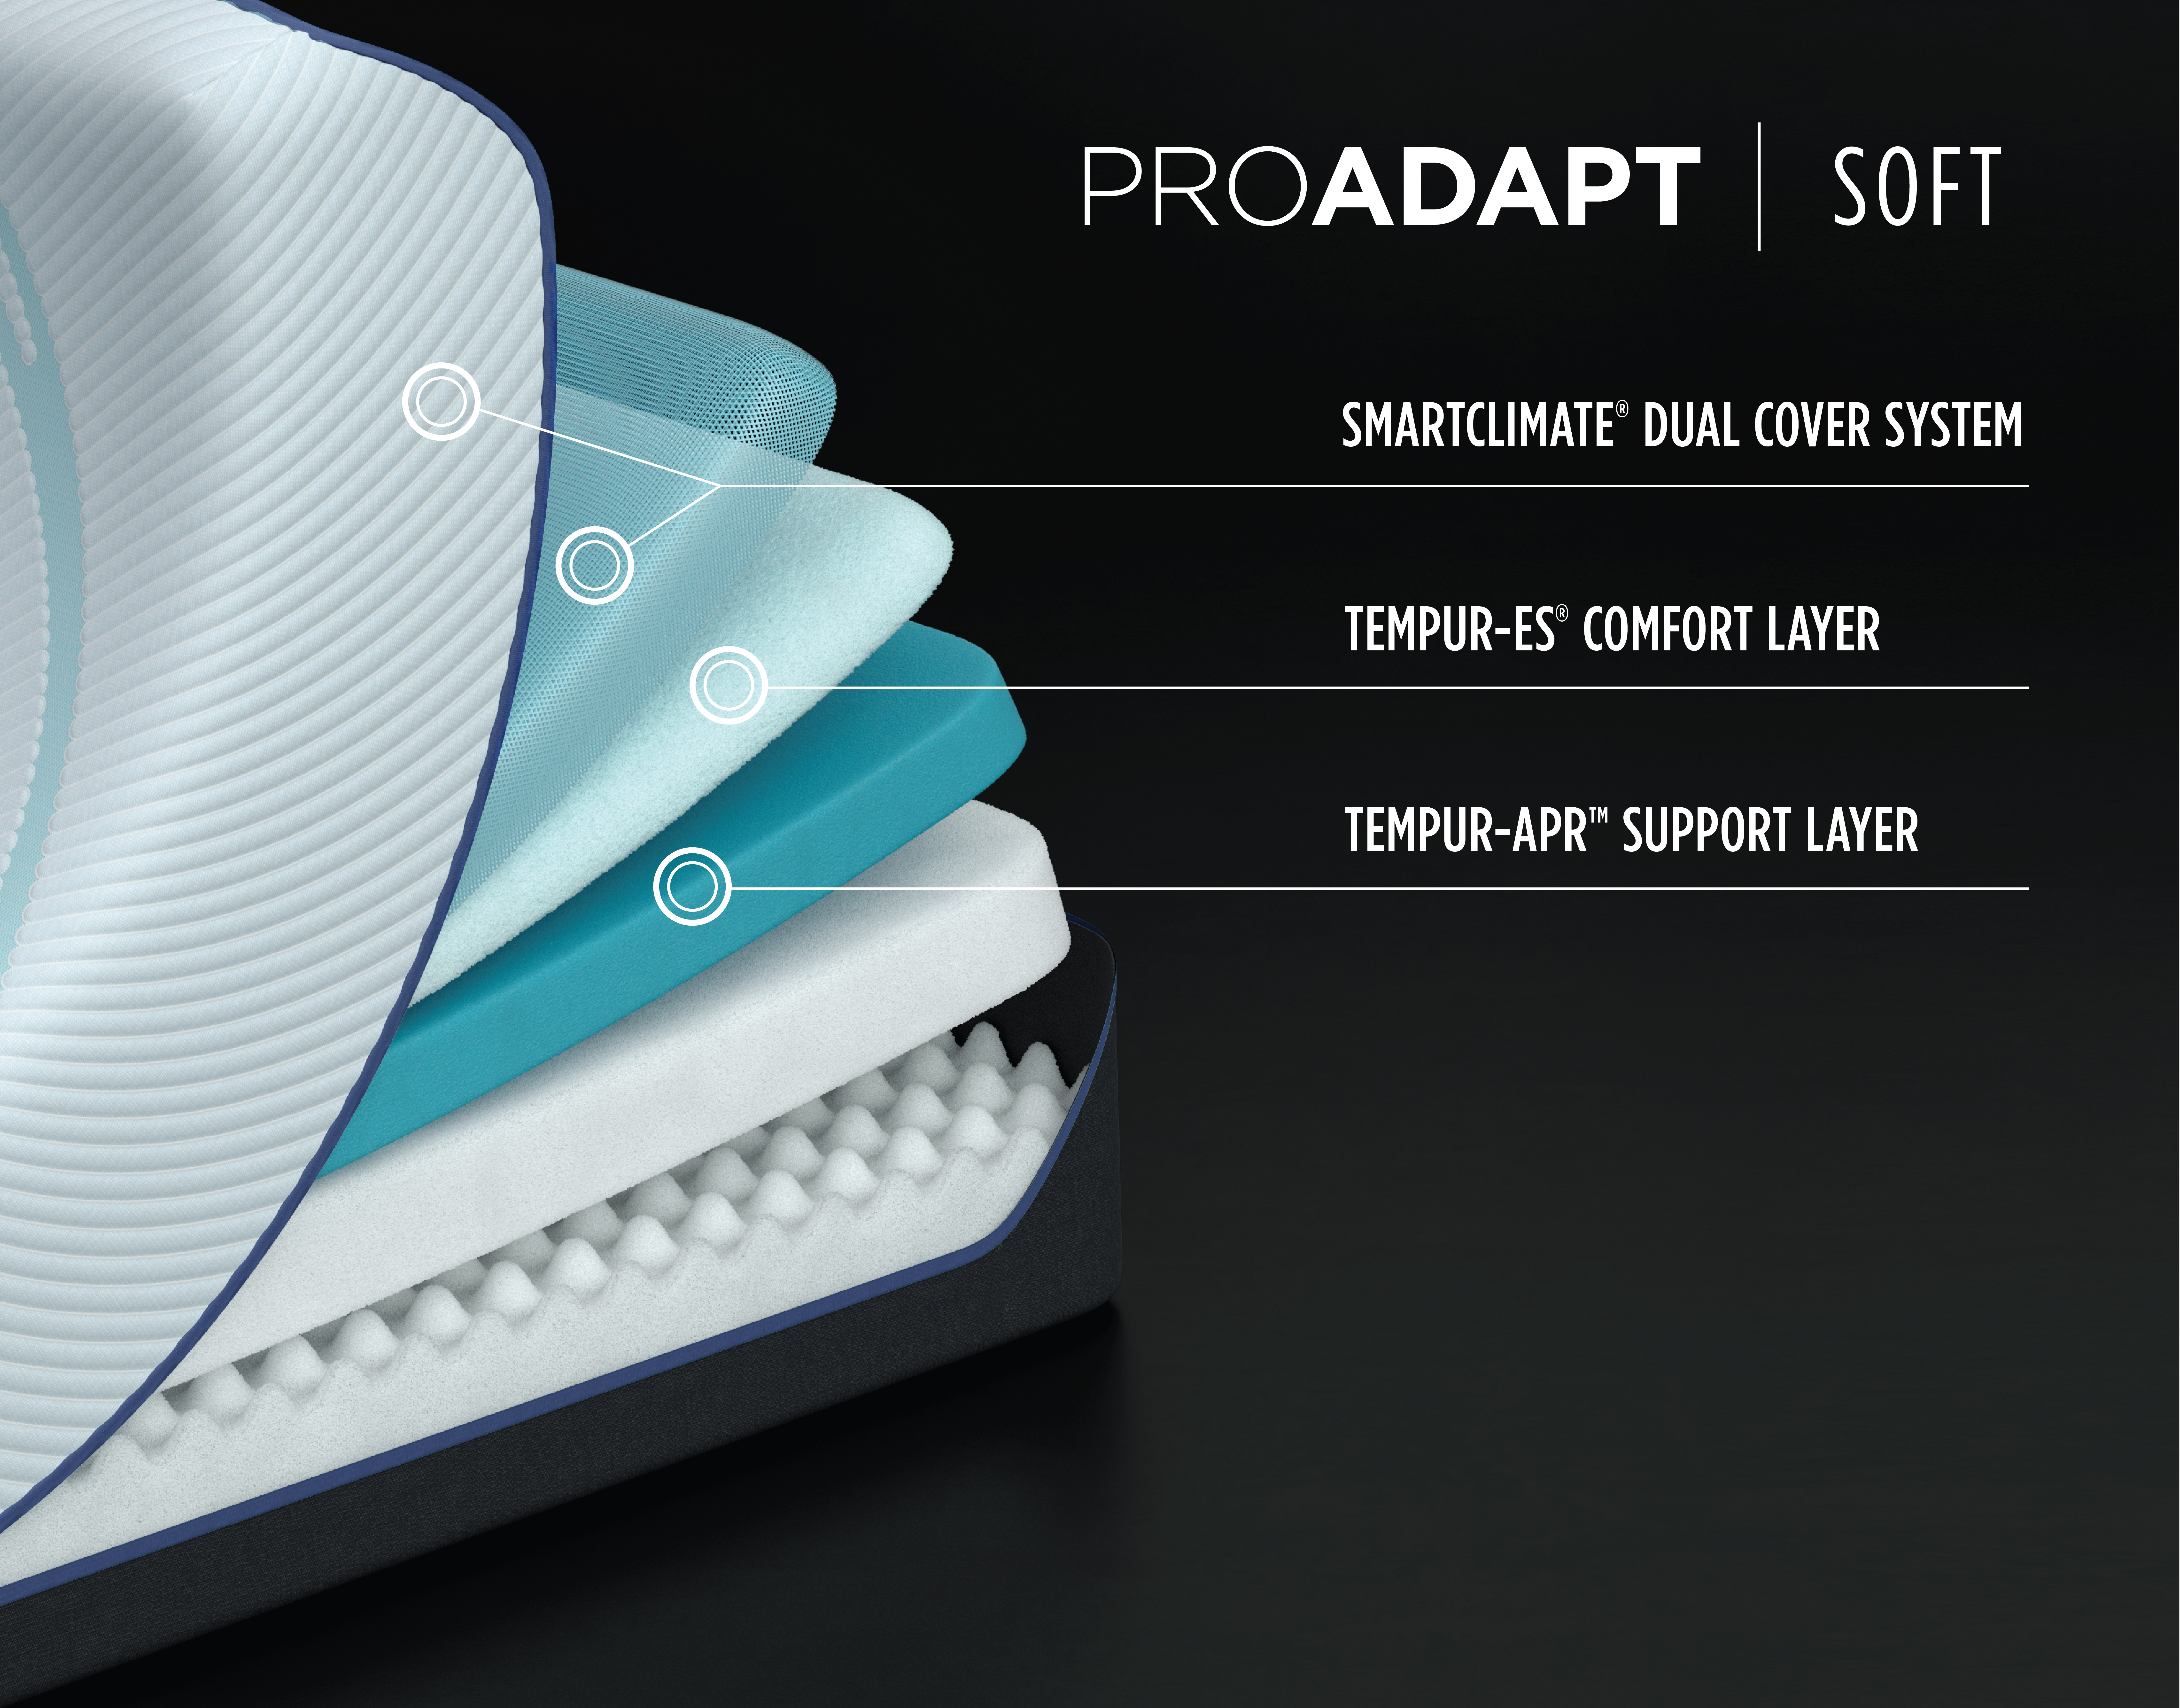 73923-proadapt-soft-layer.jpg